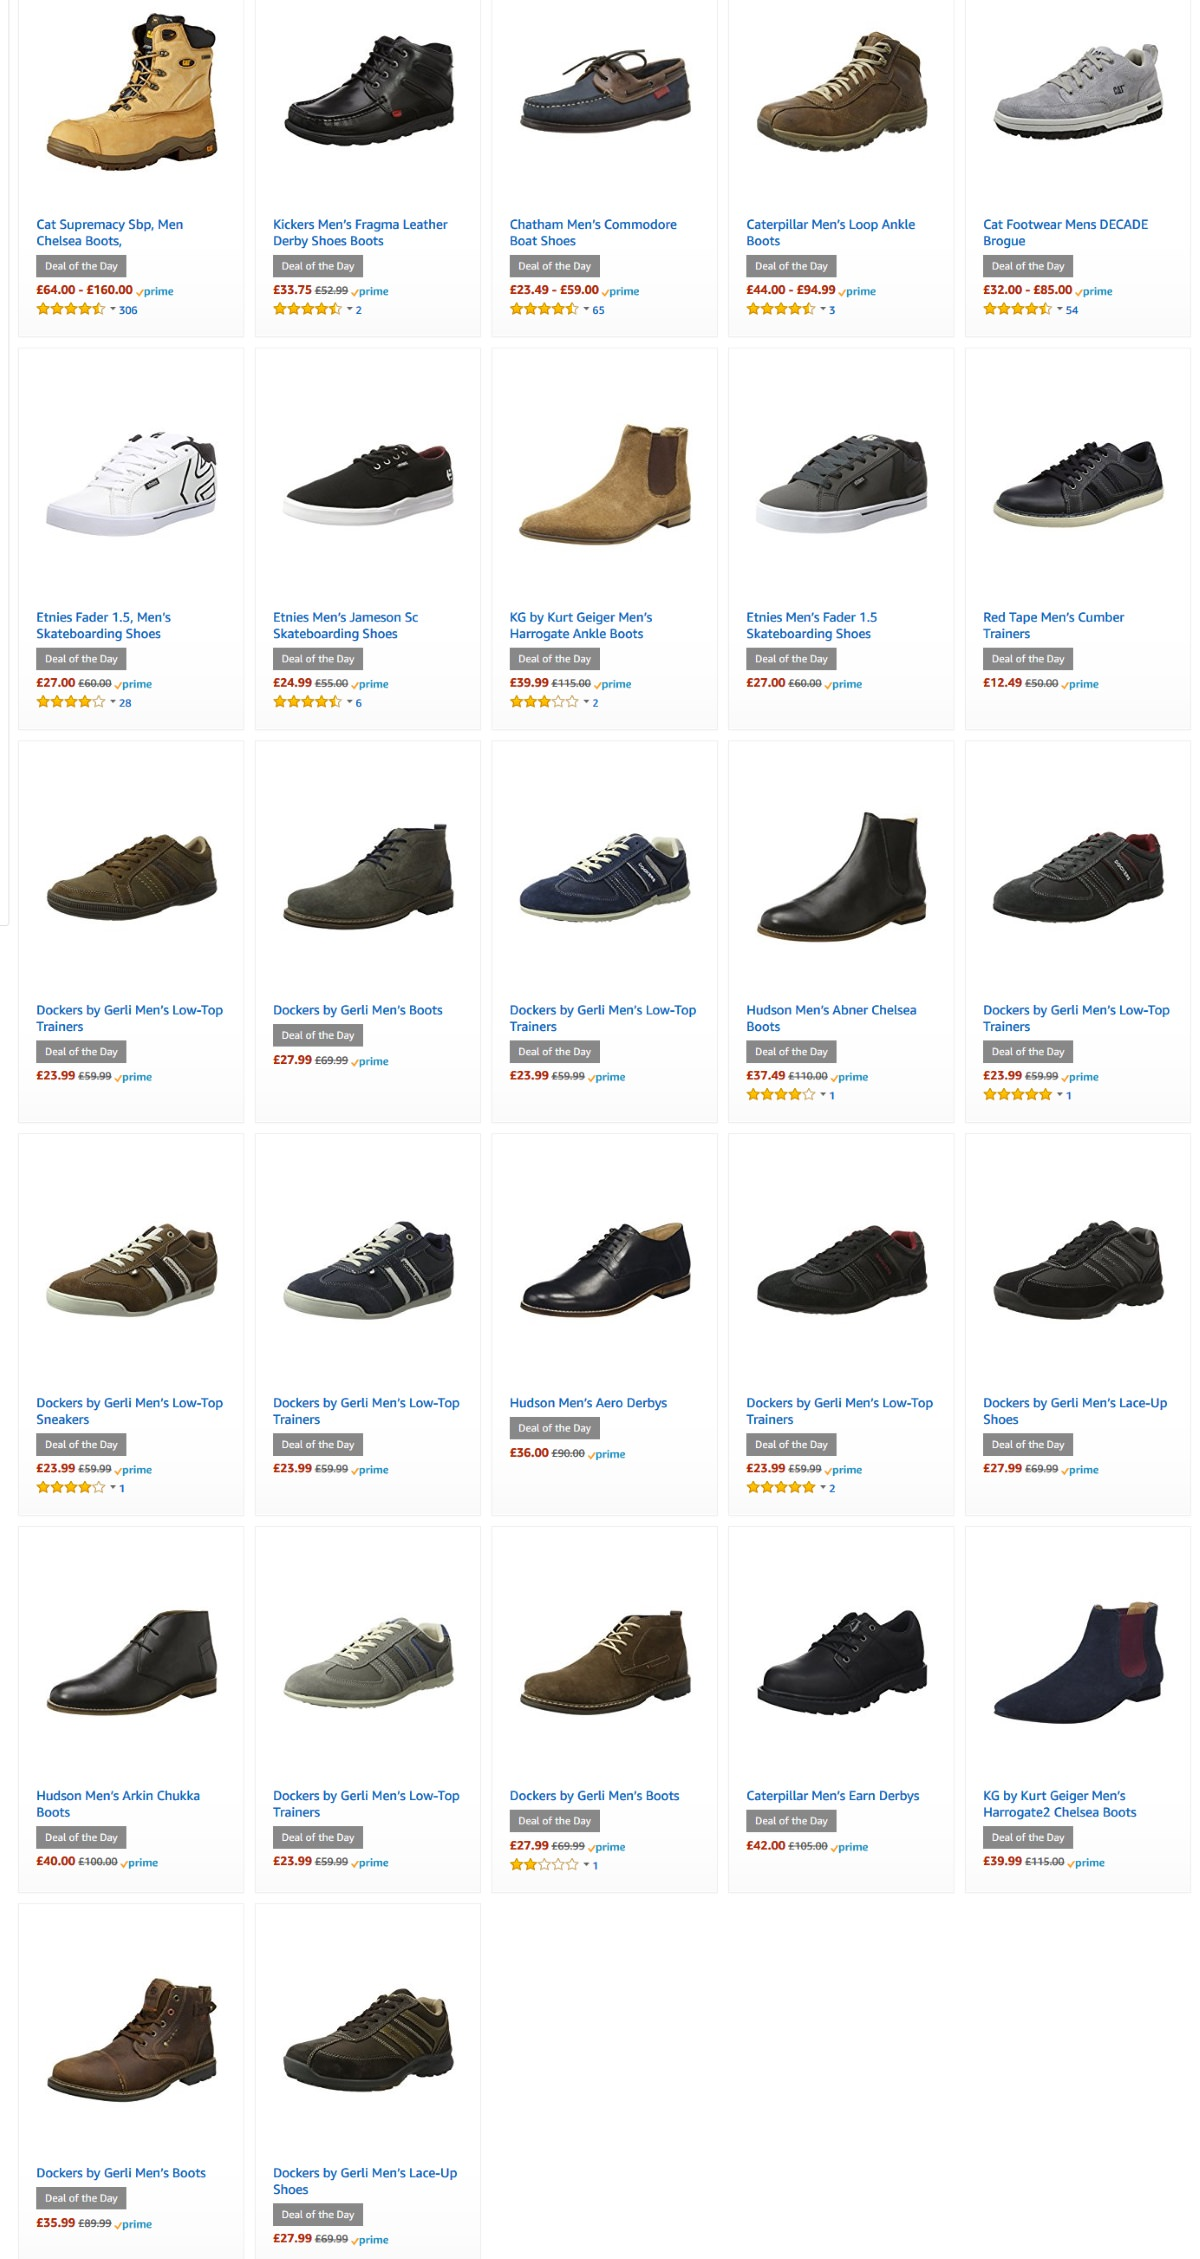 0e29c90092df5 Up to 65% OFF Men's Shoes - Kickers Men's Fragma Leather Derby Shoes ...